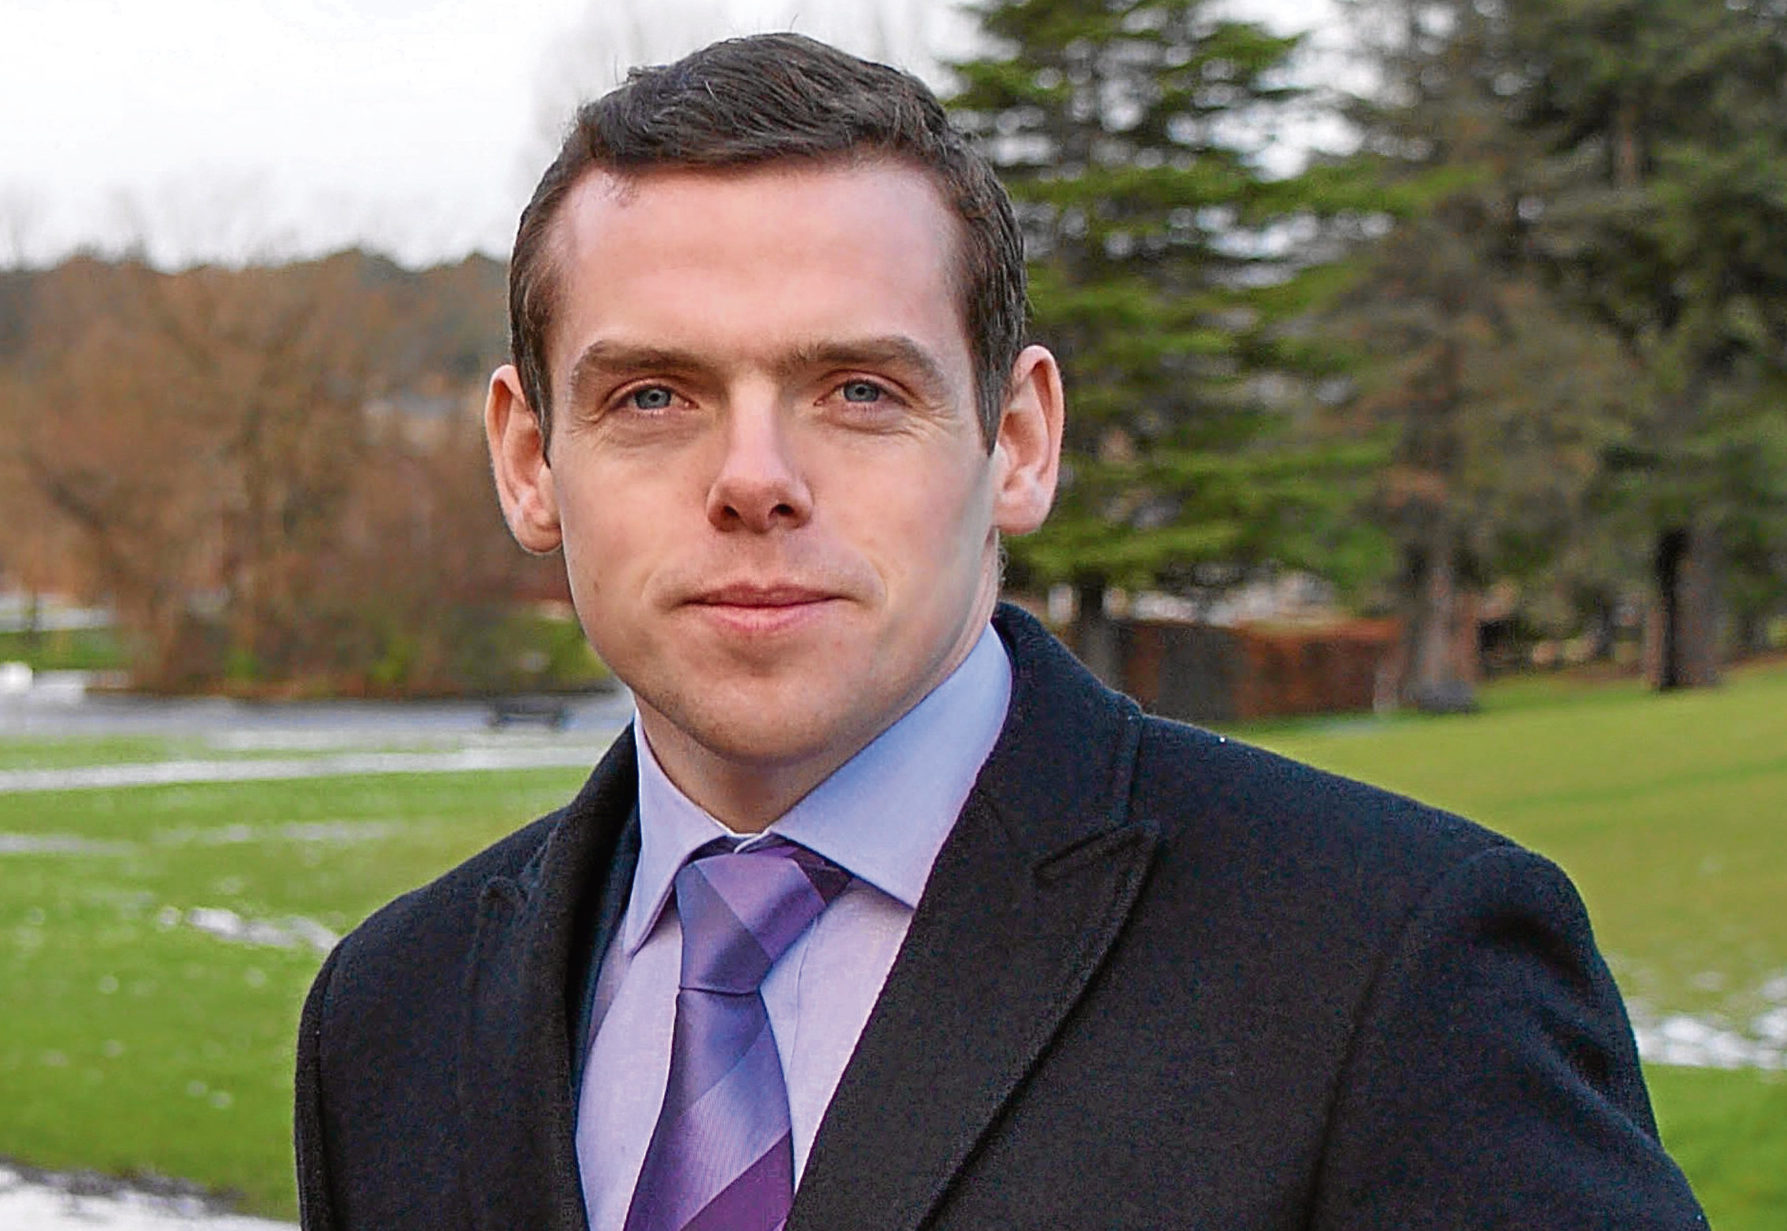 Douglas Ross thanked health workers in his constituency